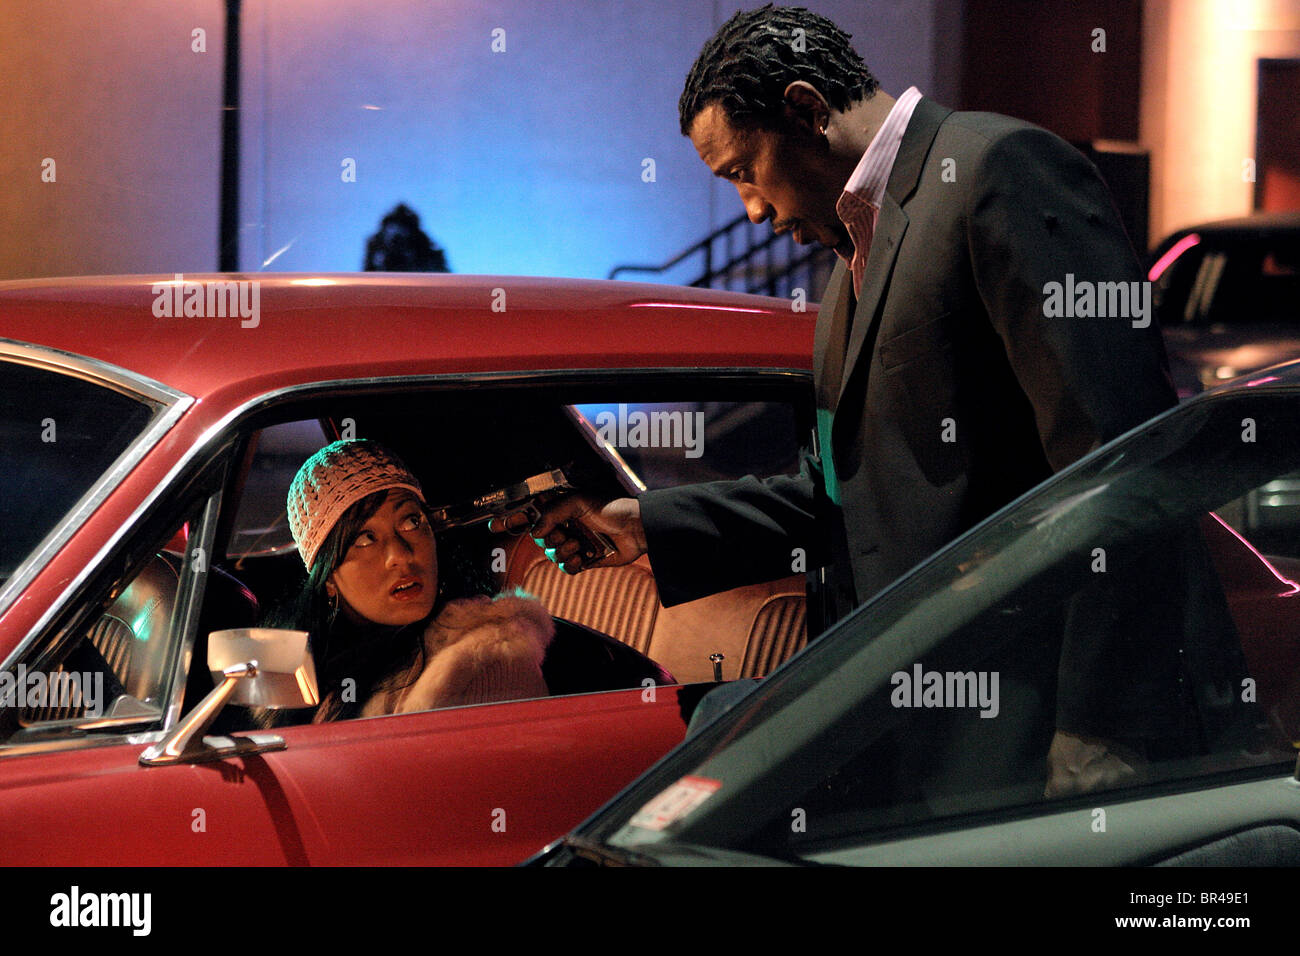 Quinones Stock Photos Images Page 2 Alamy Bros Ju201 Jackie Wesley Snipes Hard Luck 2006 Image